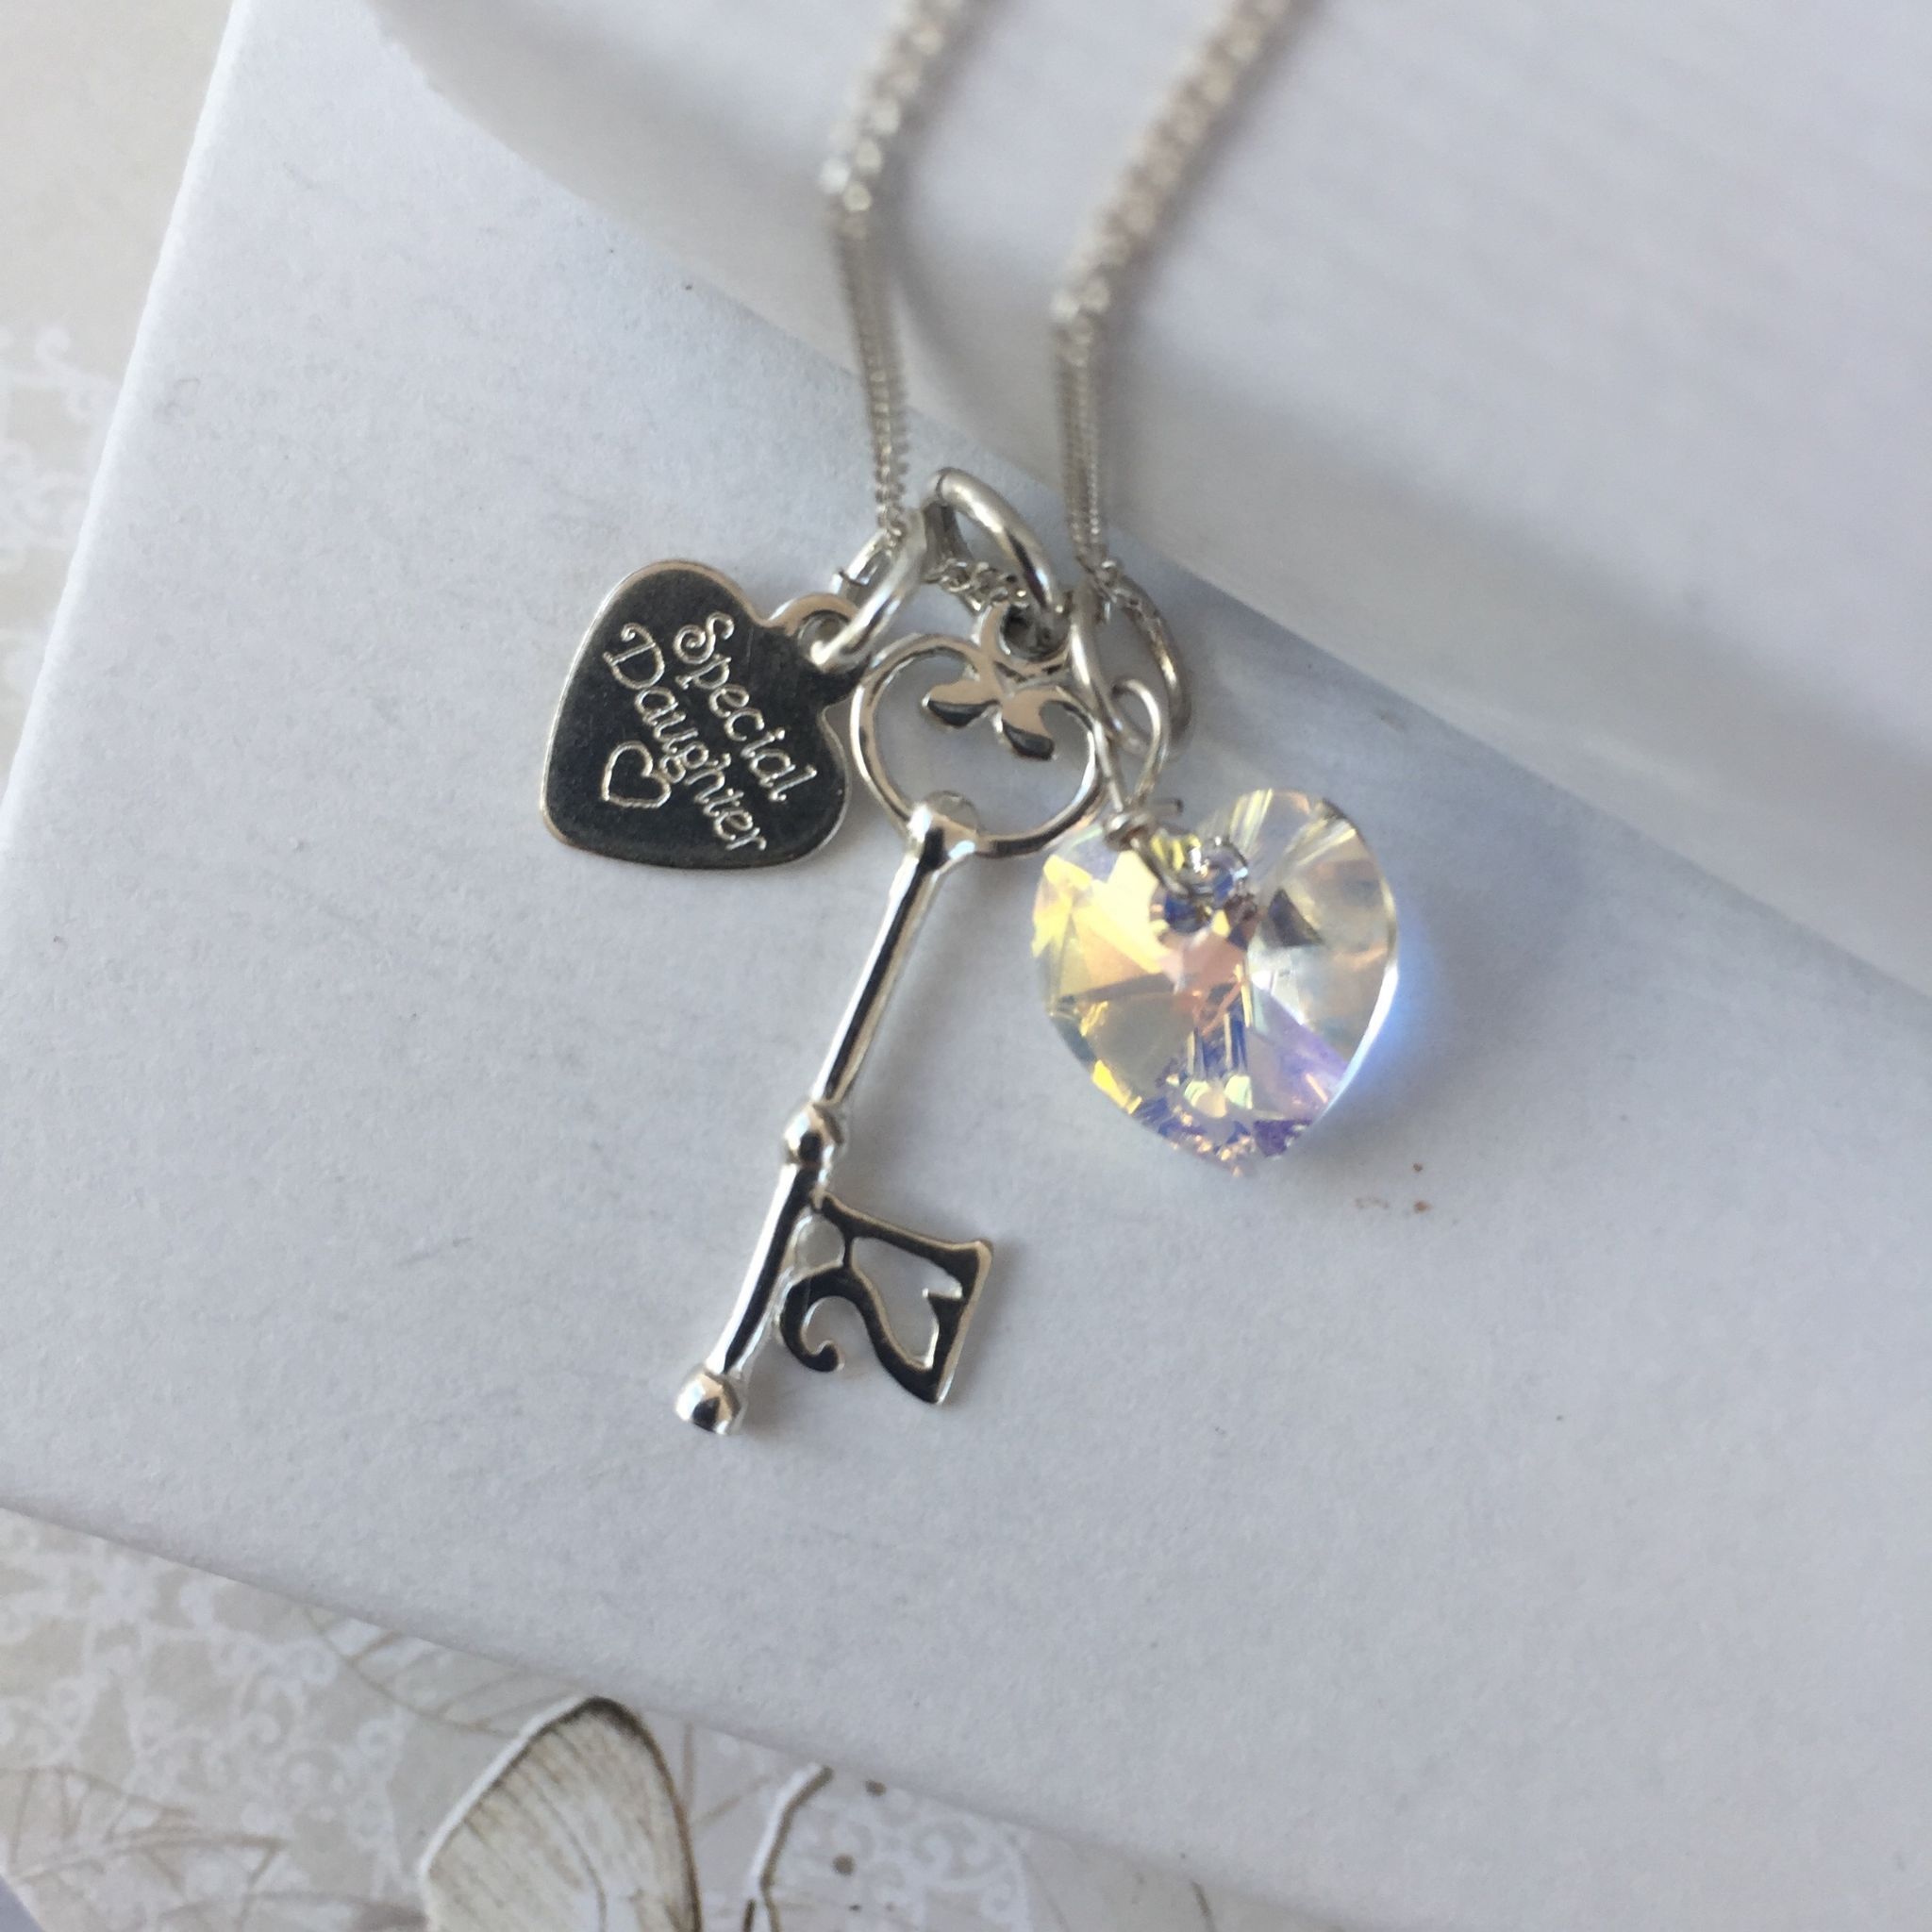 21st Birthday Gift Necklace 7920 P